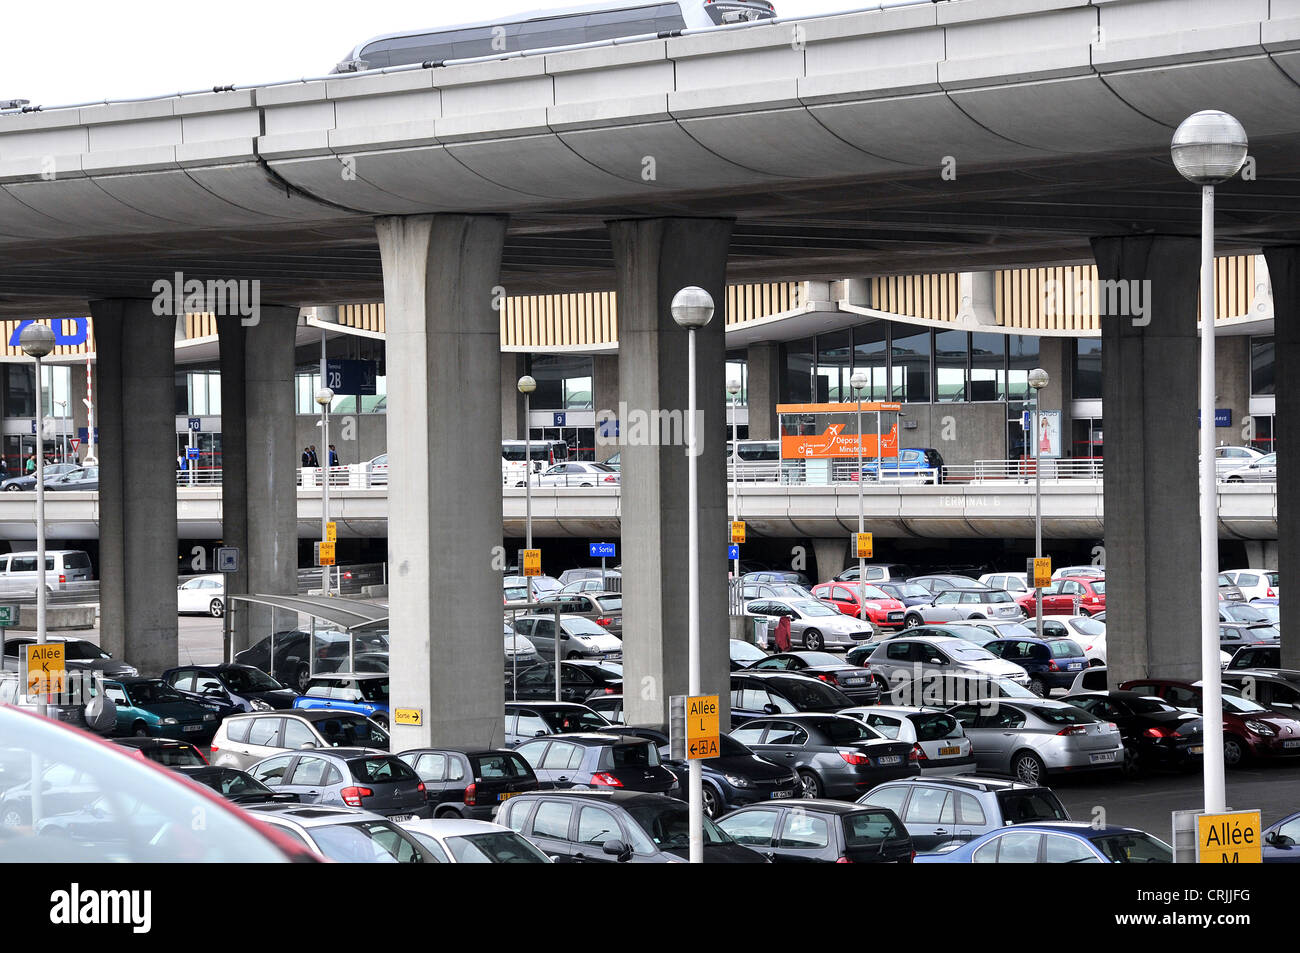 cars parking roissy charles de gaulle airport terminal 2 paris france stock photo 48967508 alamy. Black Bedroom Furniture Sets. Home Design Ideas